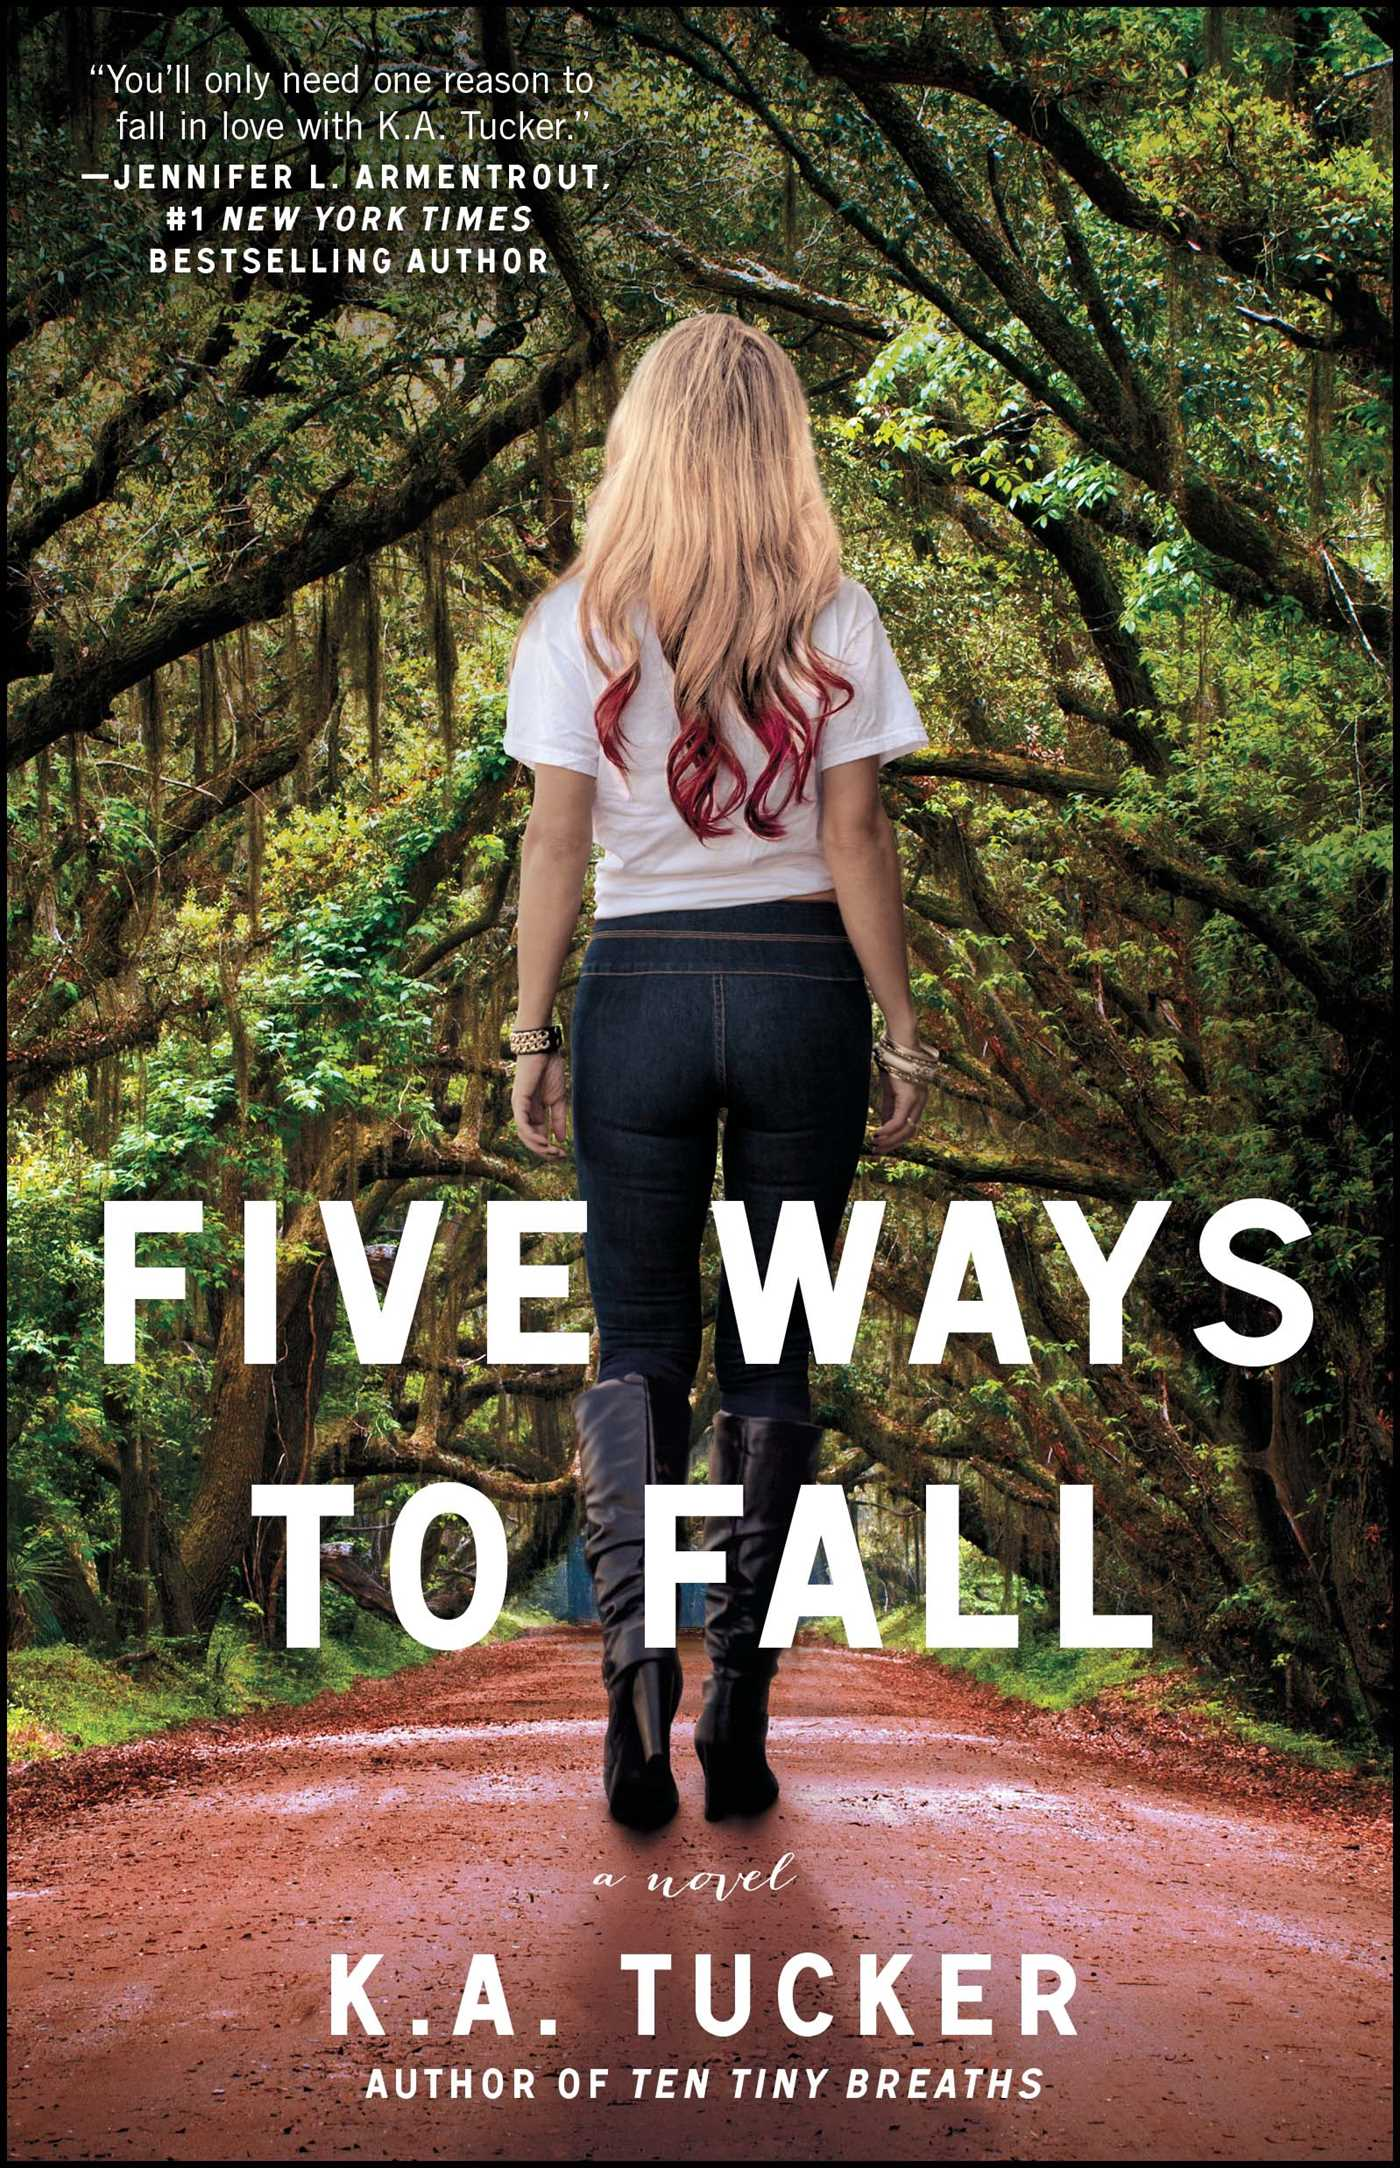 Five ways to fall 9781476740515 hr